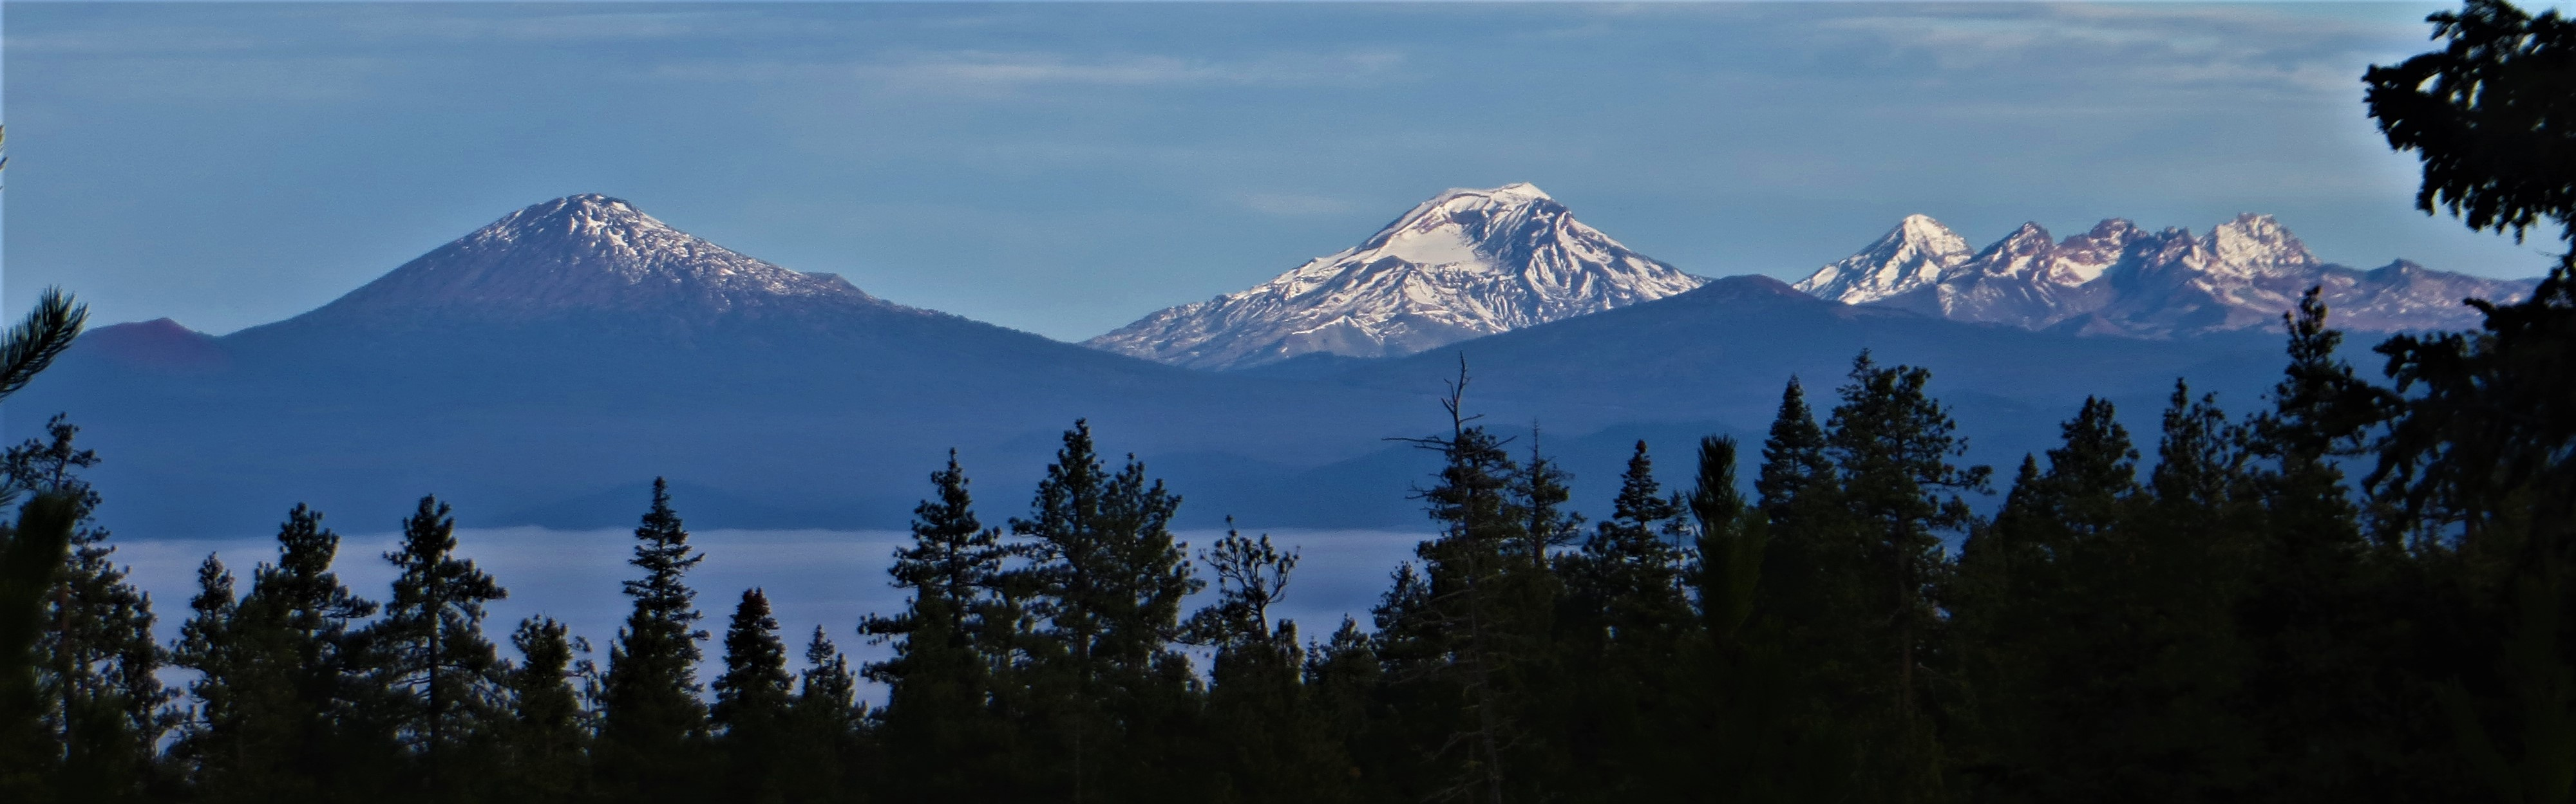 View of Cascade Range from HWY 20, OR